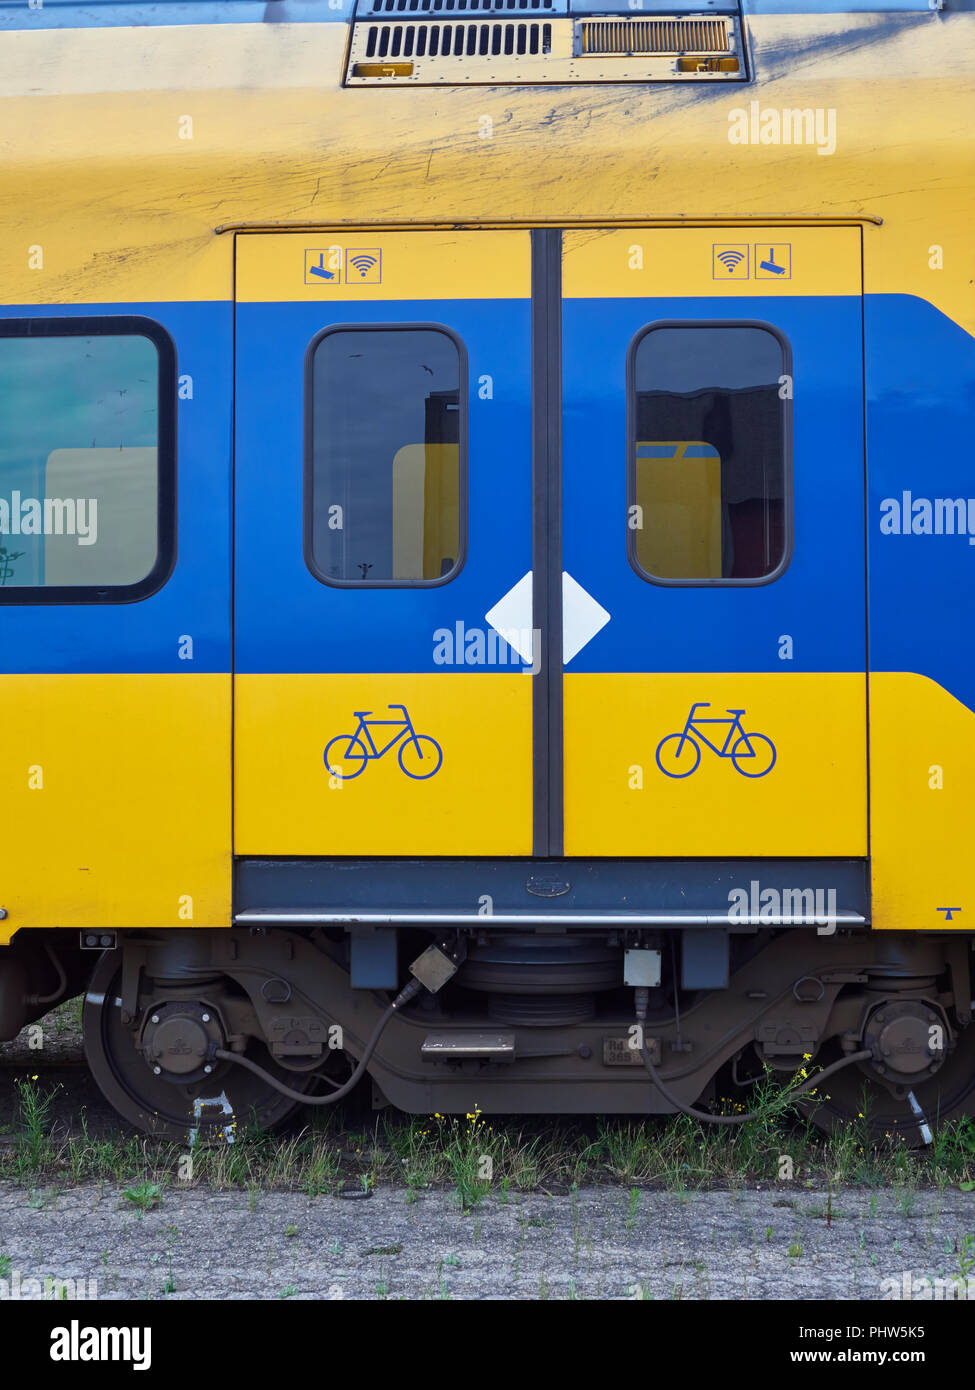 Close up detail of the Sliding Doors and associated Safety Markings on old urban Dutch Railway Passenger Compartments stored at the Container Terminal - Stock Image